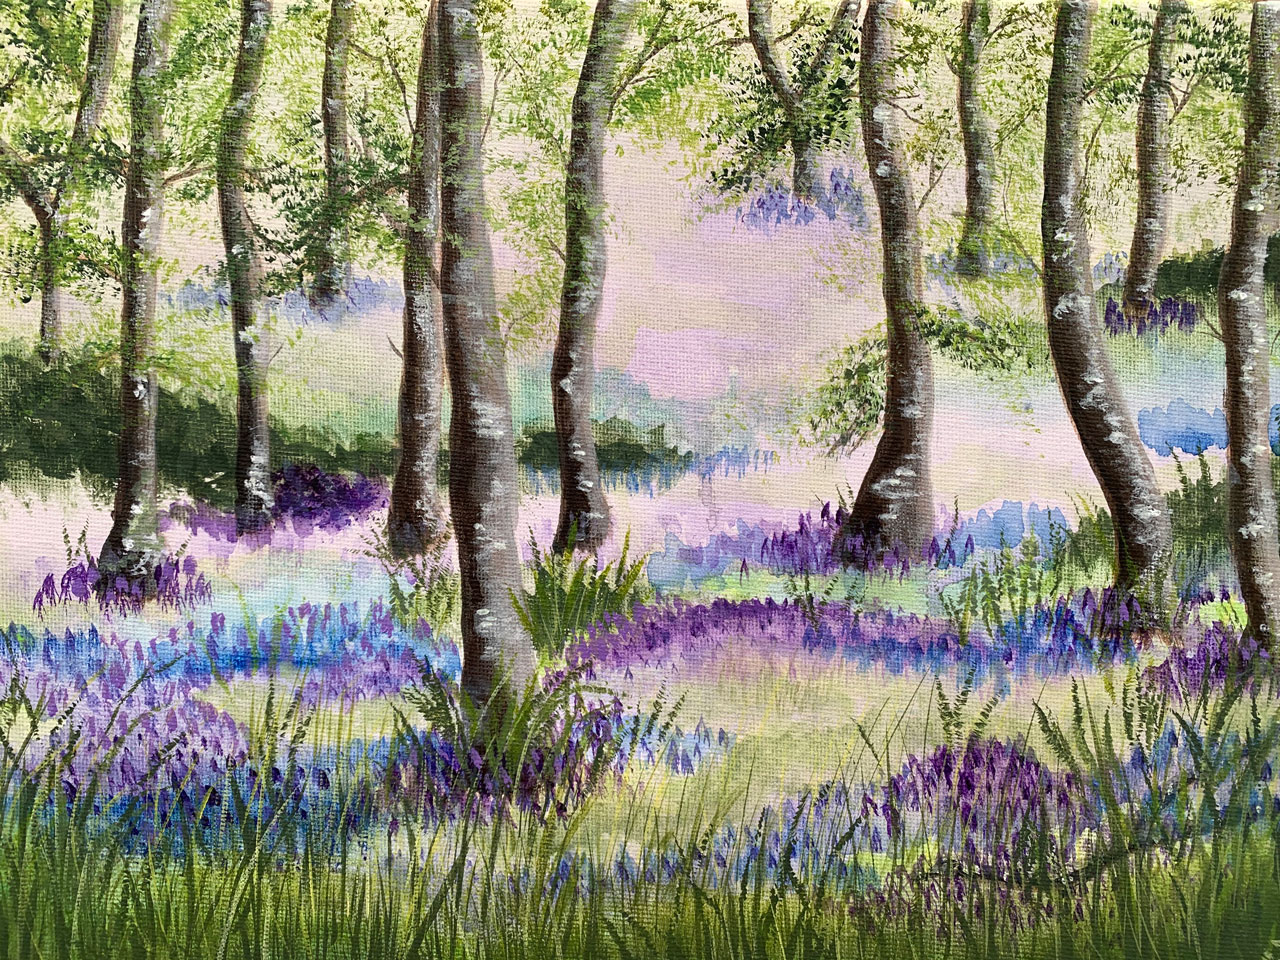 In Bluebell Woods